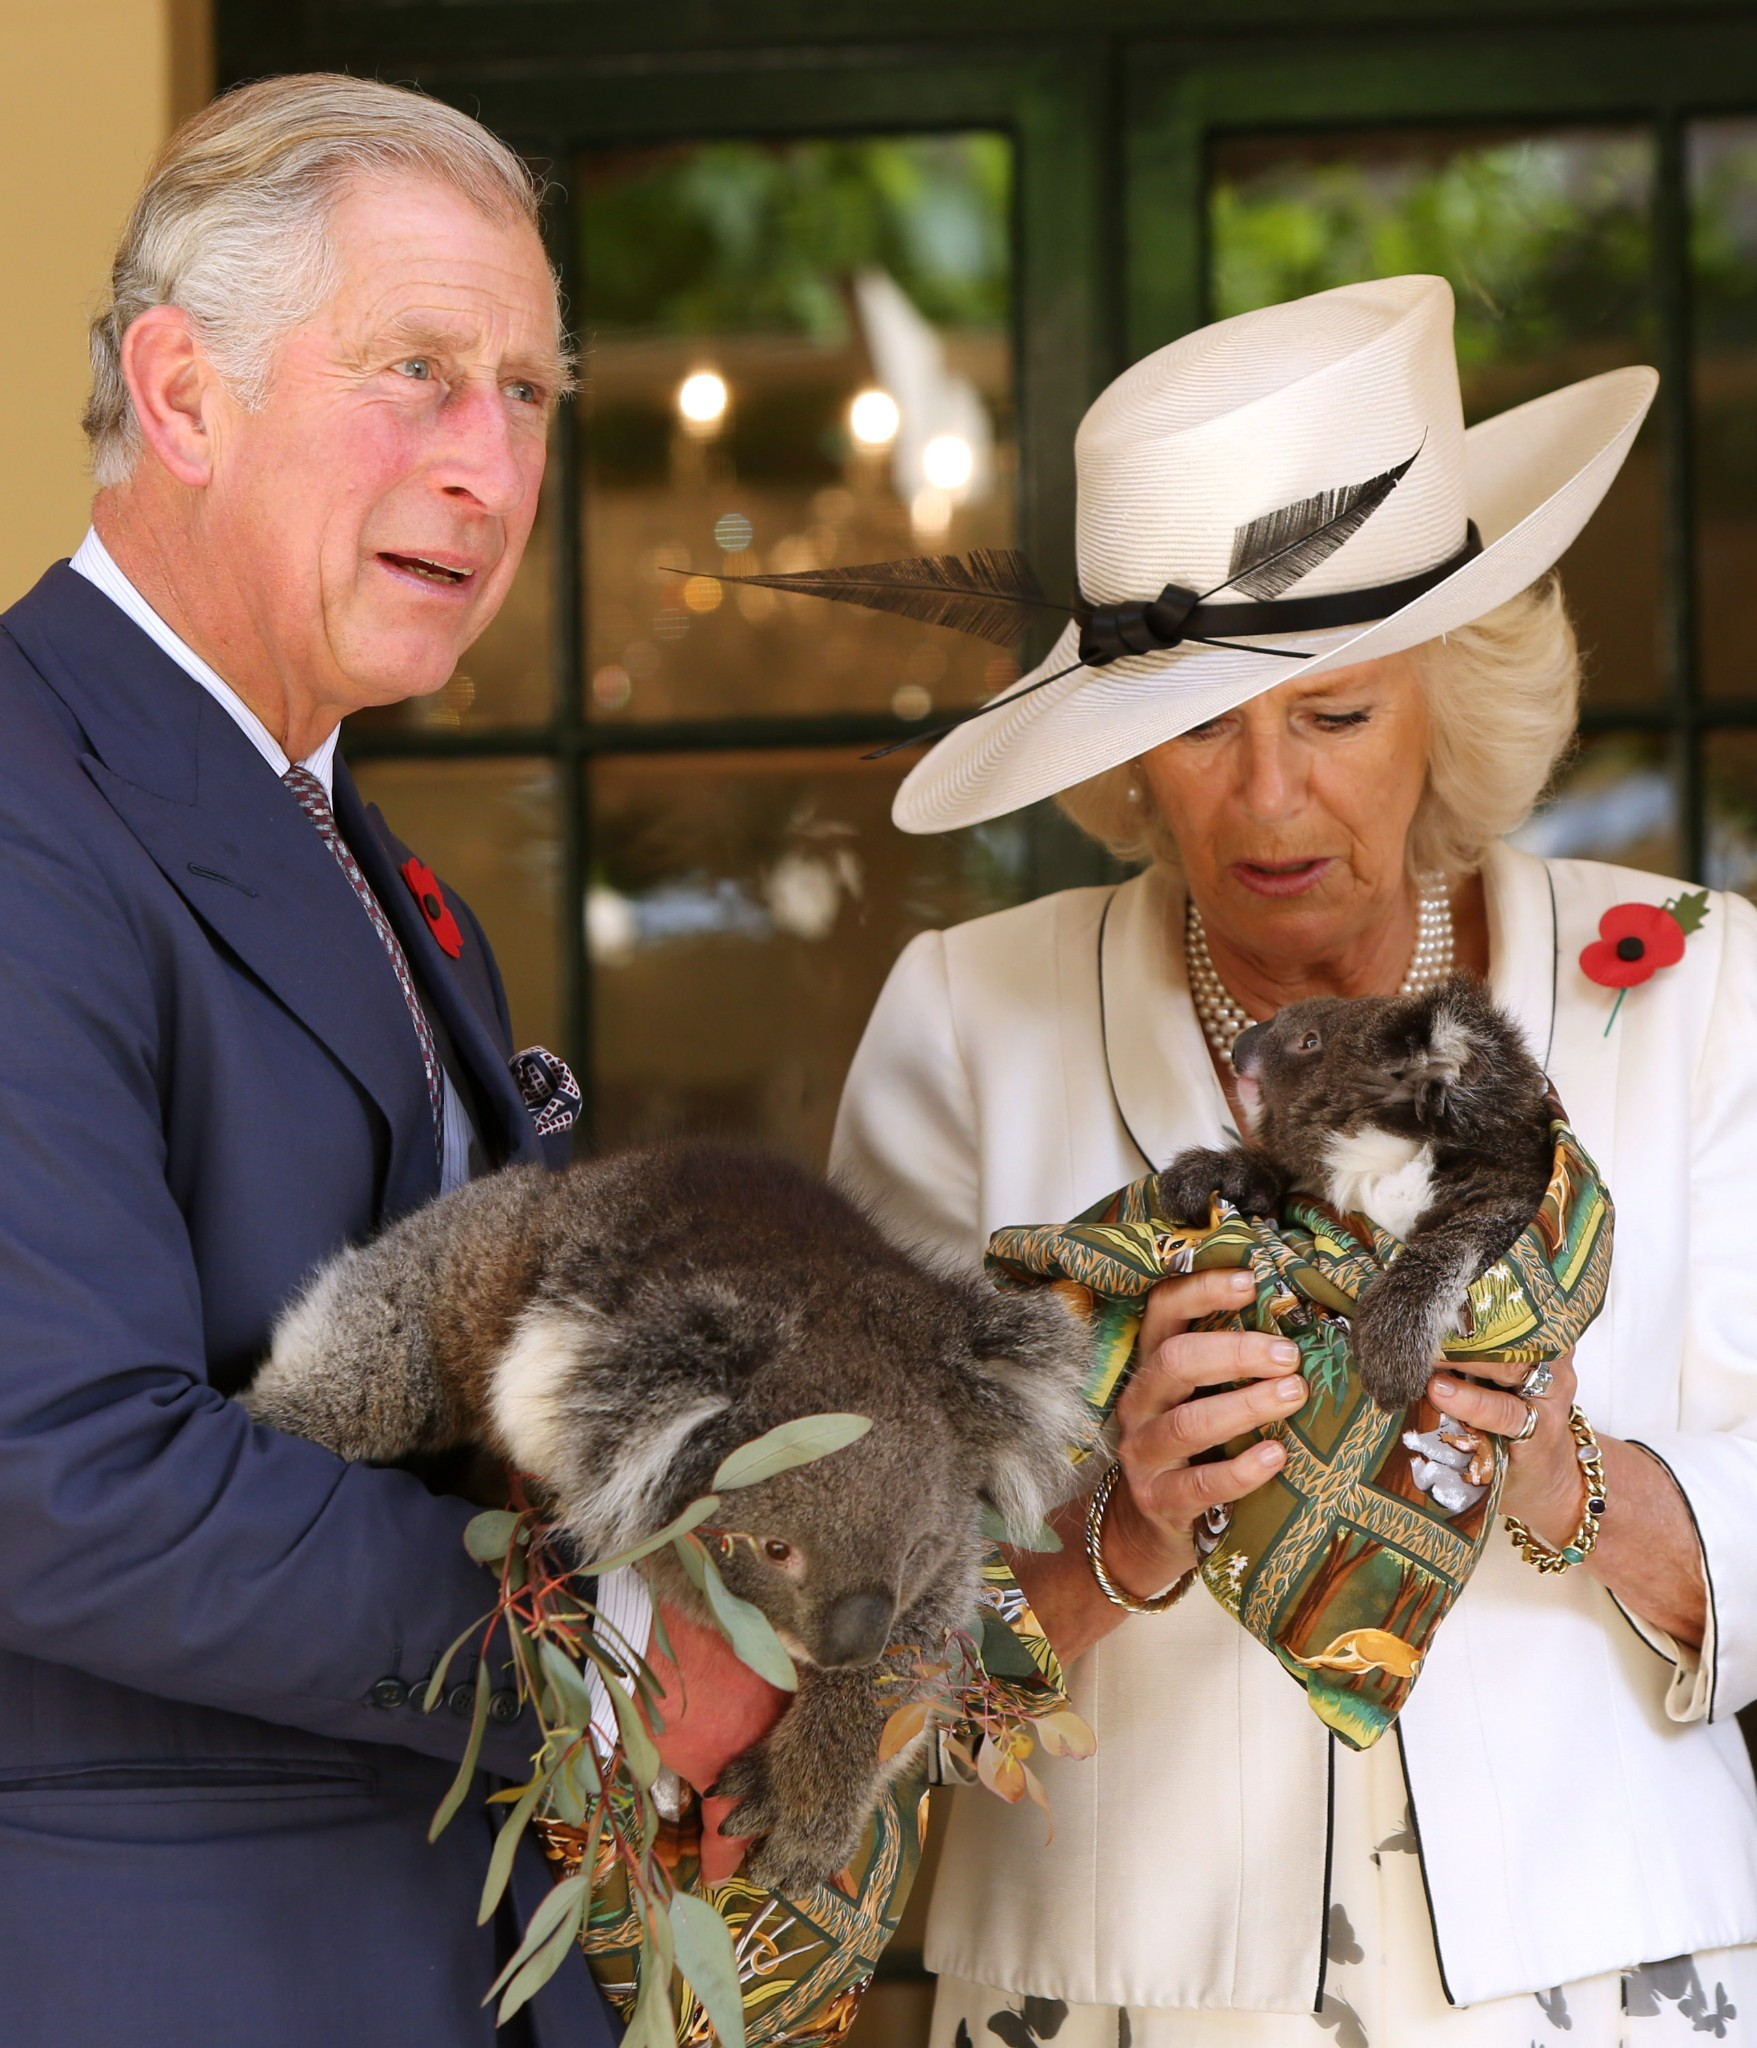 Photo: ADELAIDE, AUSTRALIA - NOVEMBER 07:  Camilla, Duchess of Cornwall and Prince Charles, Prince of Wales hold koalas at Government House on November 7, 2012 in Adelaide, Australia. The Royal couple are in Australia on the second leg of a Diamond Jubilee Tour taking in Papua New Guinea, Australia and New Zealand.  (Photo by Morne de Klerk/Getty Images)